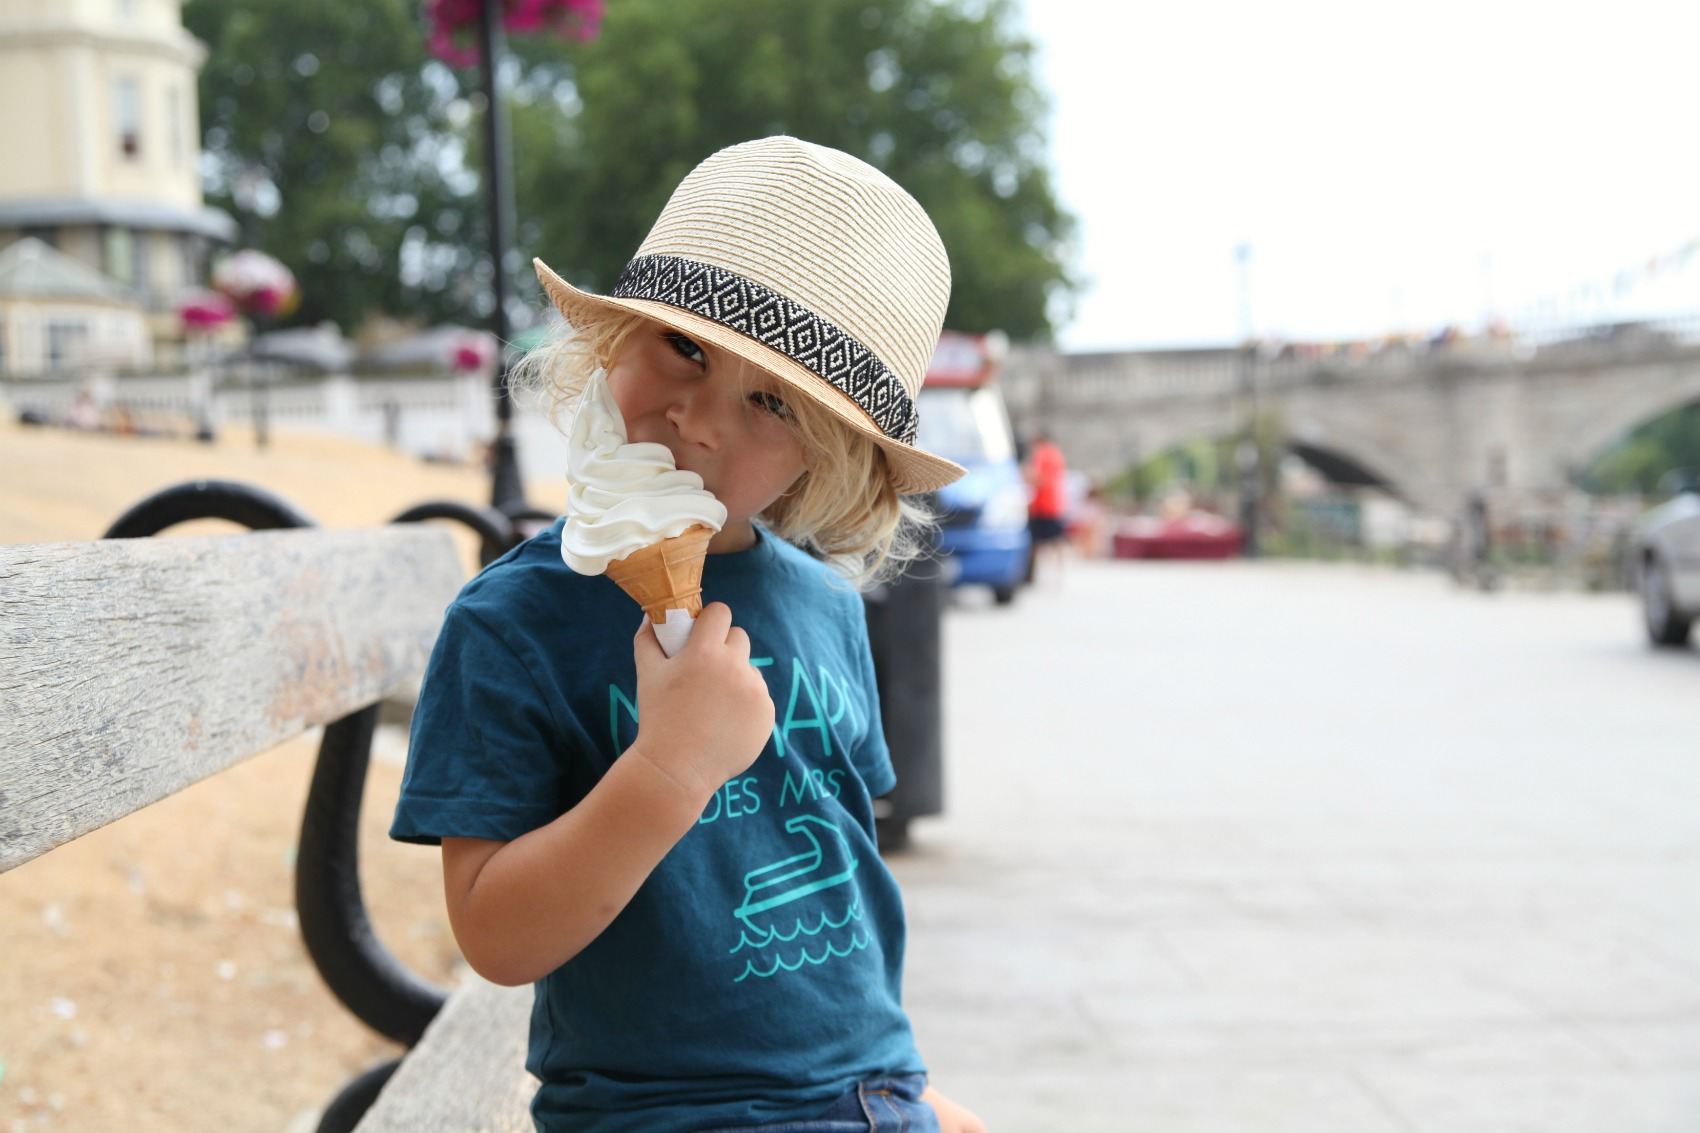 boy eating ice cream dressed in Vertbaudet